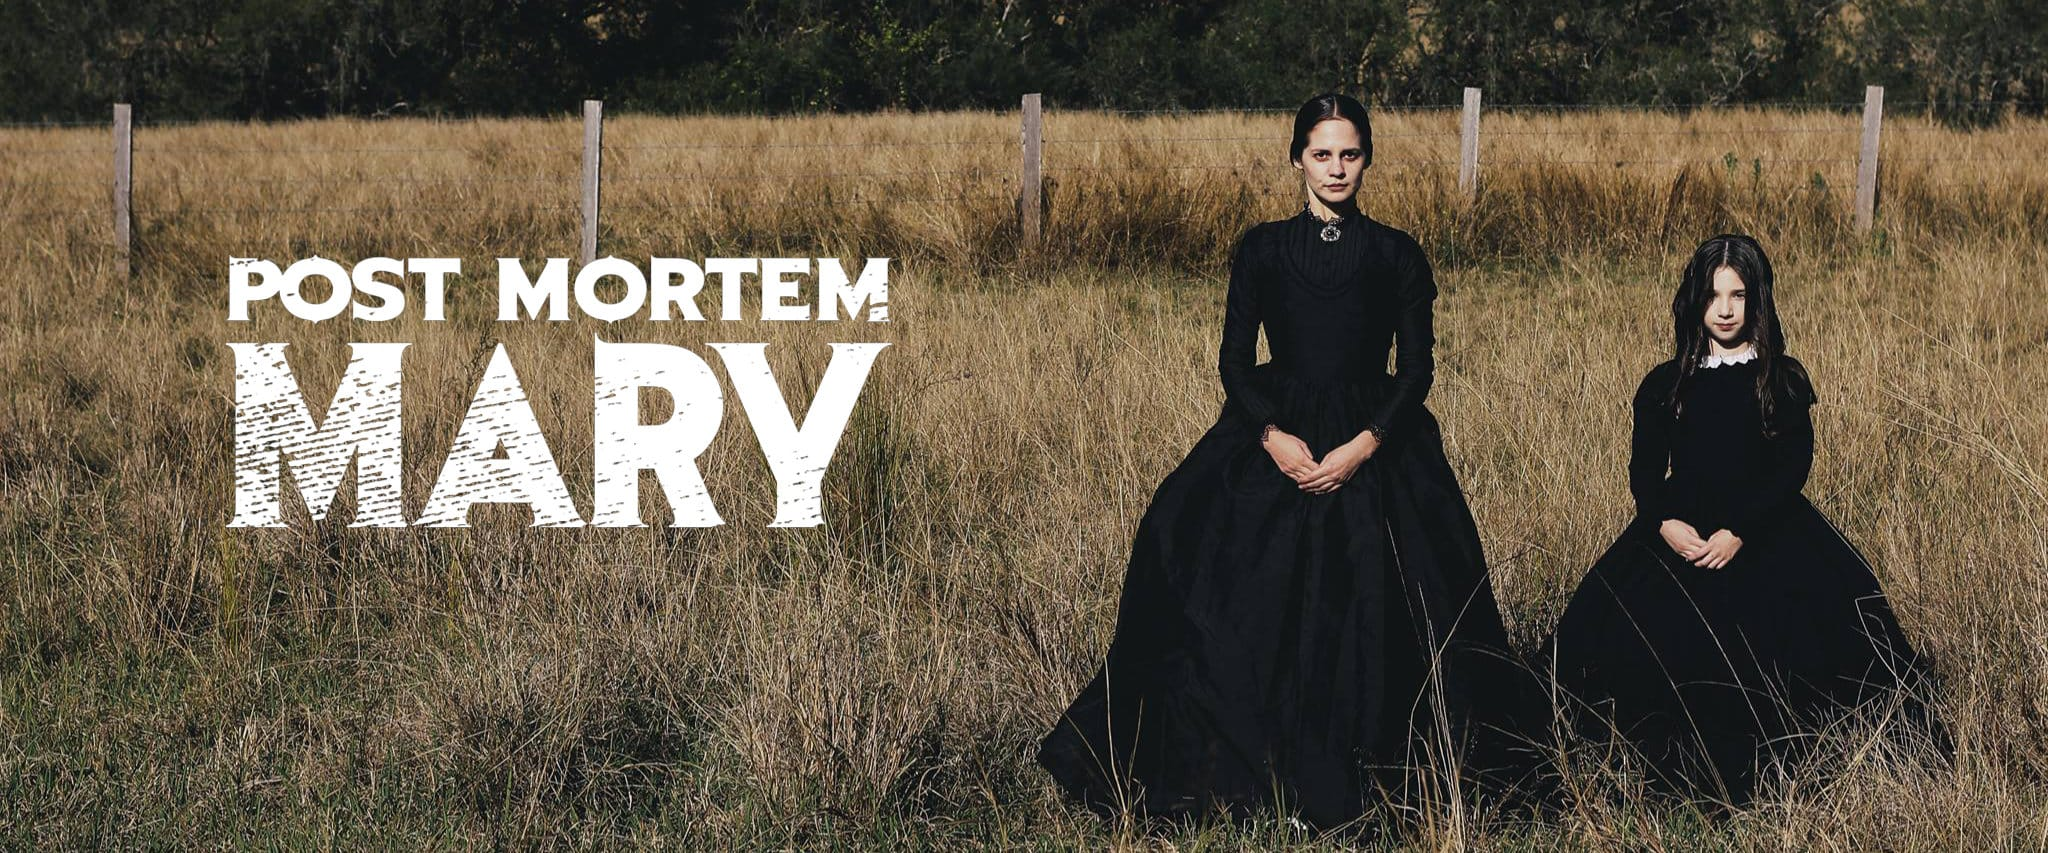 Post Mortem Mary (2017)